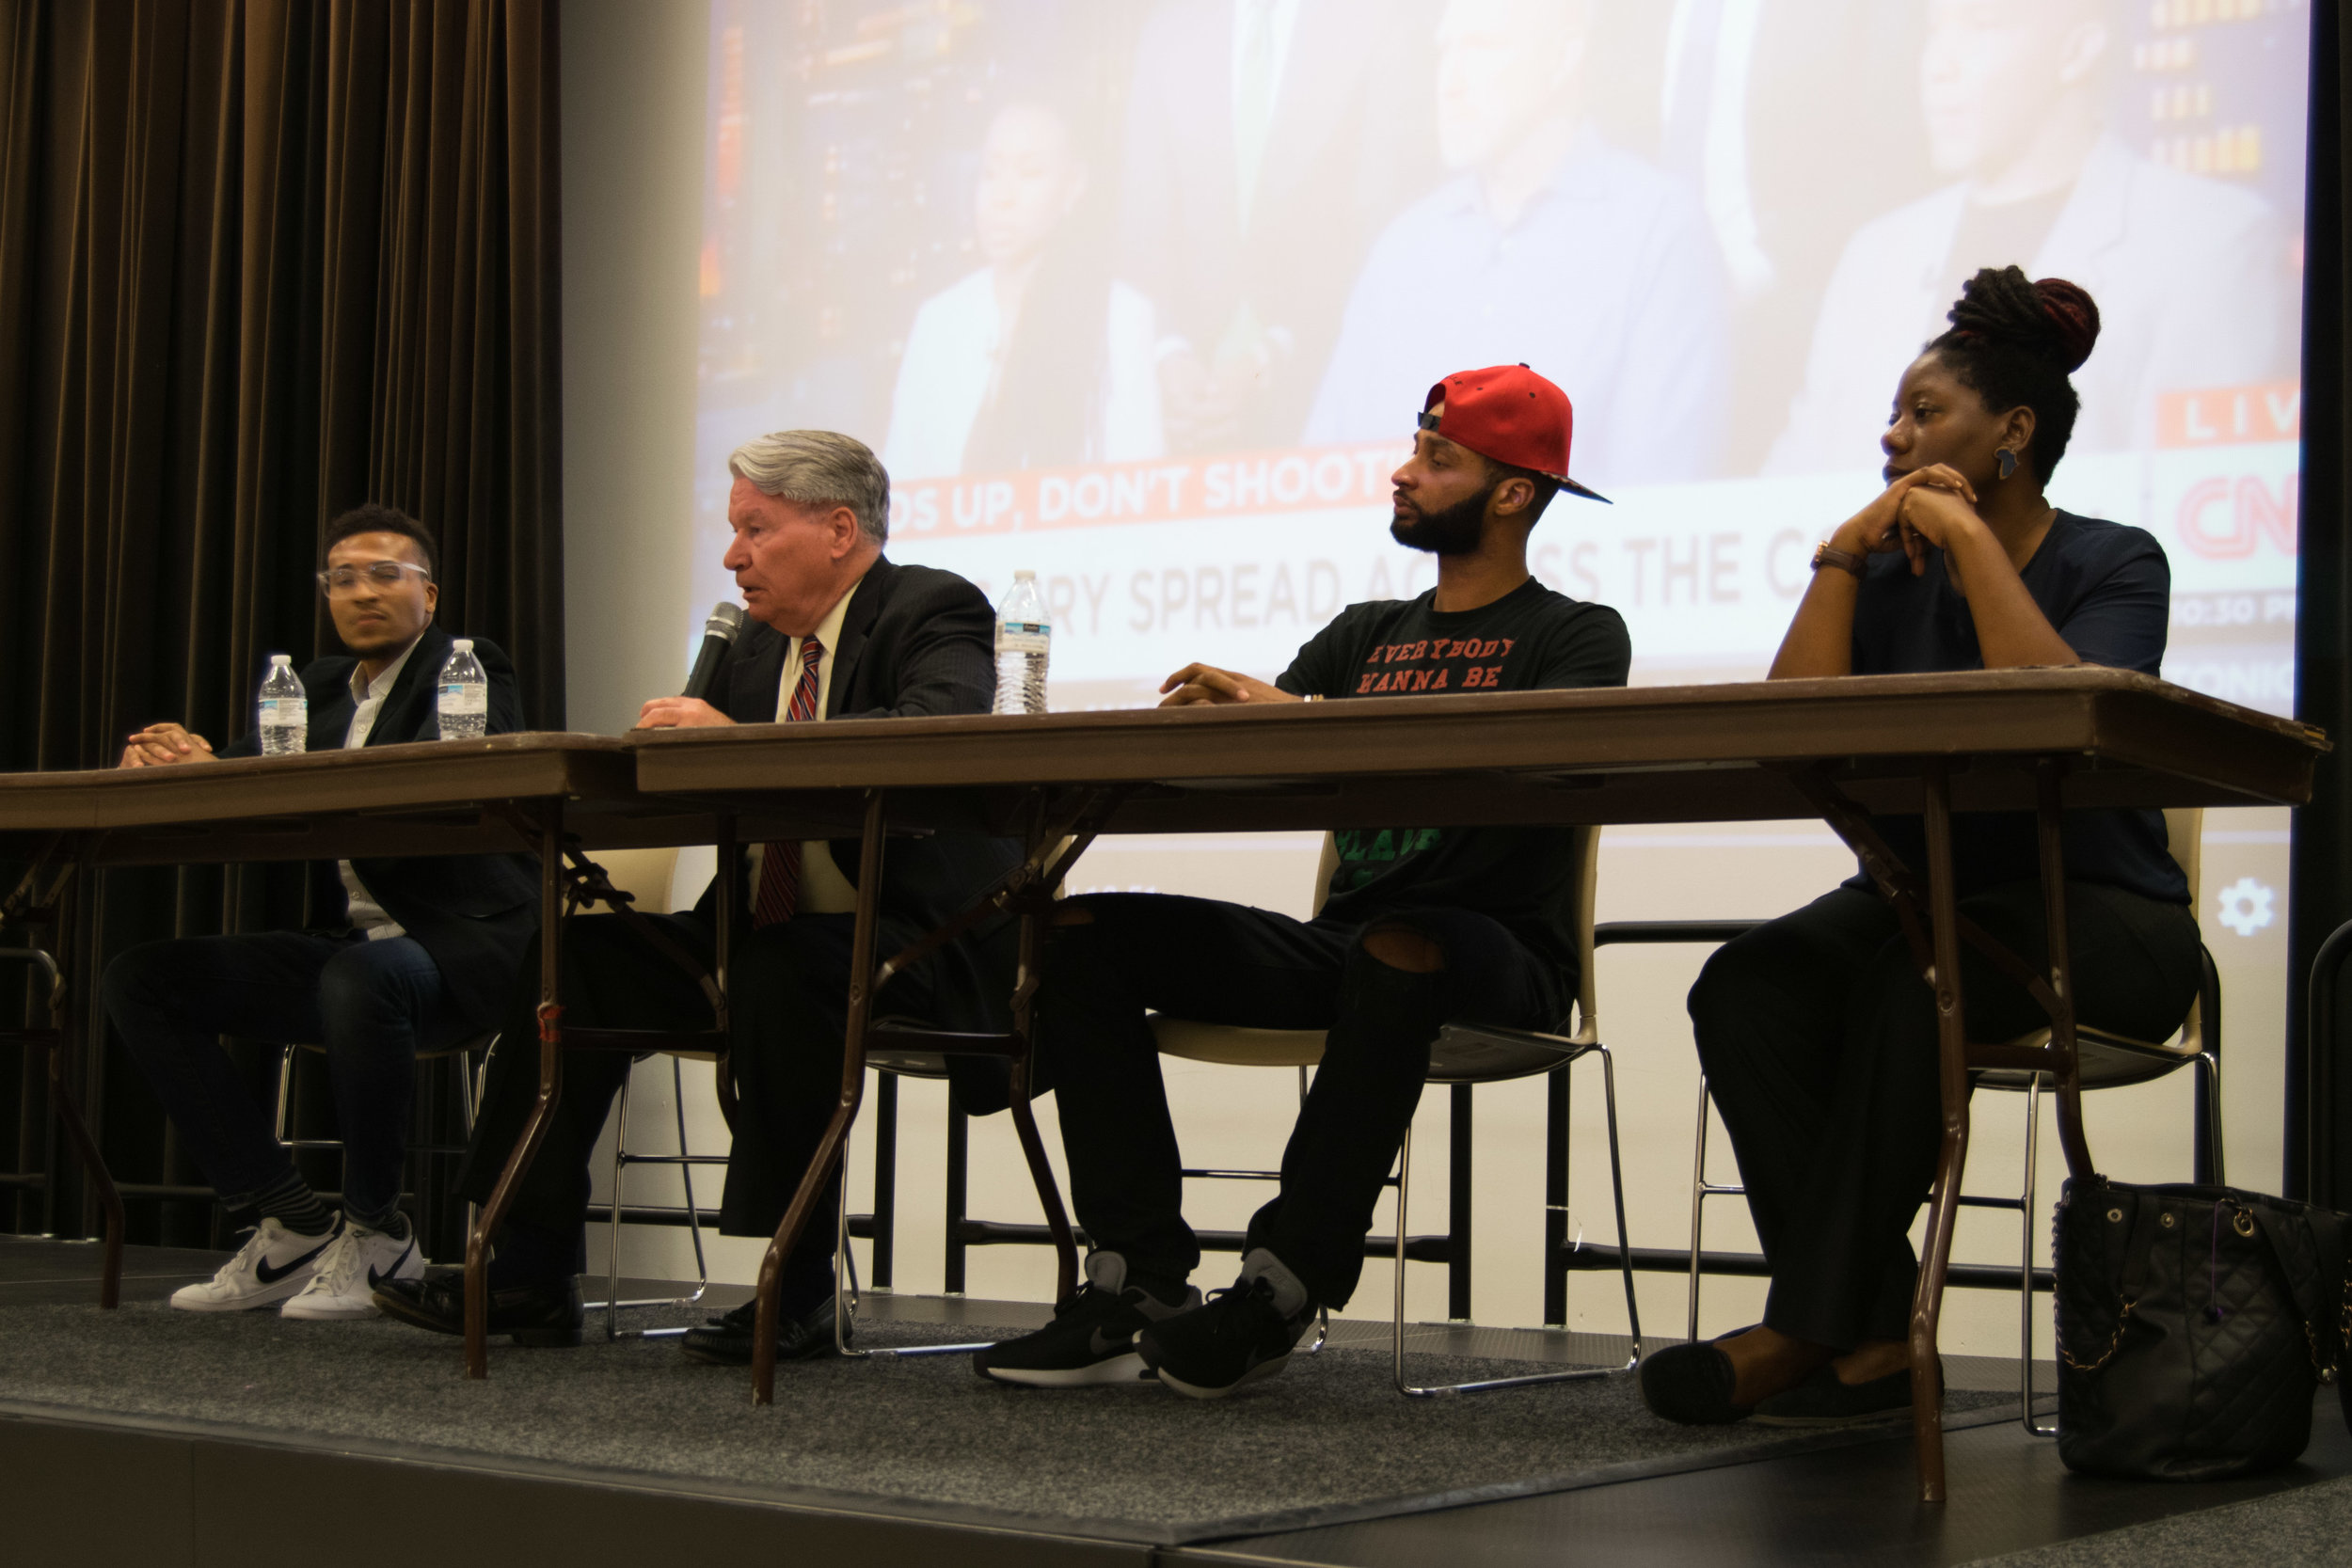 (from left to right:Aaron T. O'Neal,David Mitchell,Keith Wallace and Yejide Orunmila).David Mitchell, University of Maryland Police Chief, speaks during the Do Good Dialogue: Hands Up, Don't Shoot! hosted by The Clarice on Tuesday, Sept. 26, 2017. Chief Mitchell commented on the important role community policing can play in preventing tragedies like the shooting of Mike Brown. Photo: Amina Lampkin